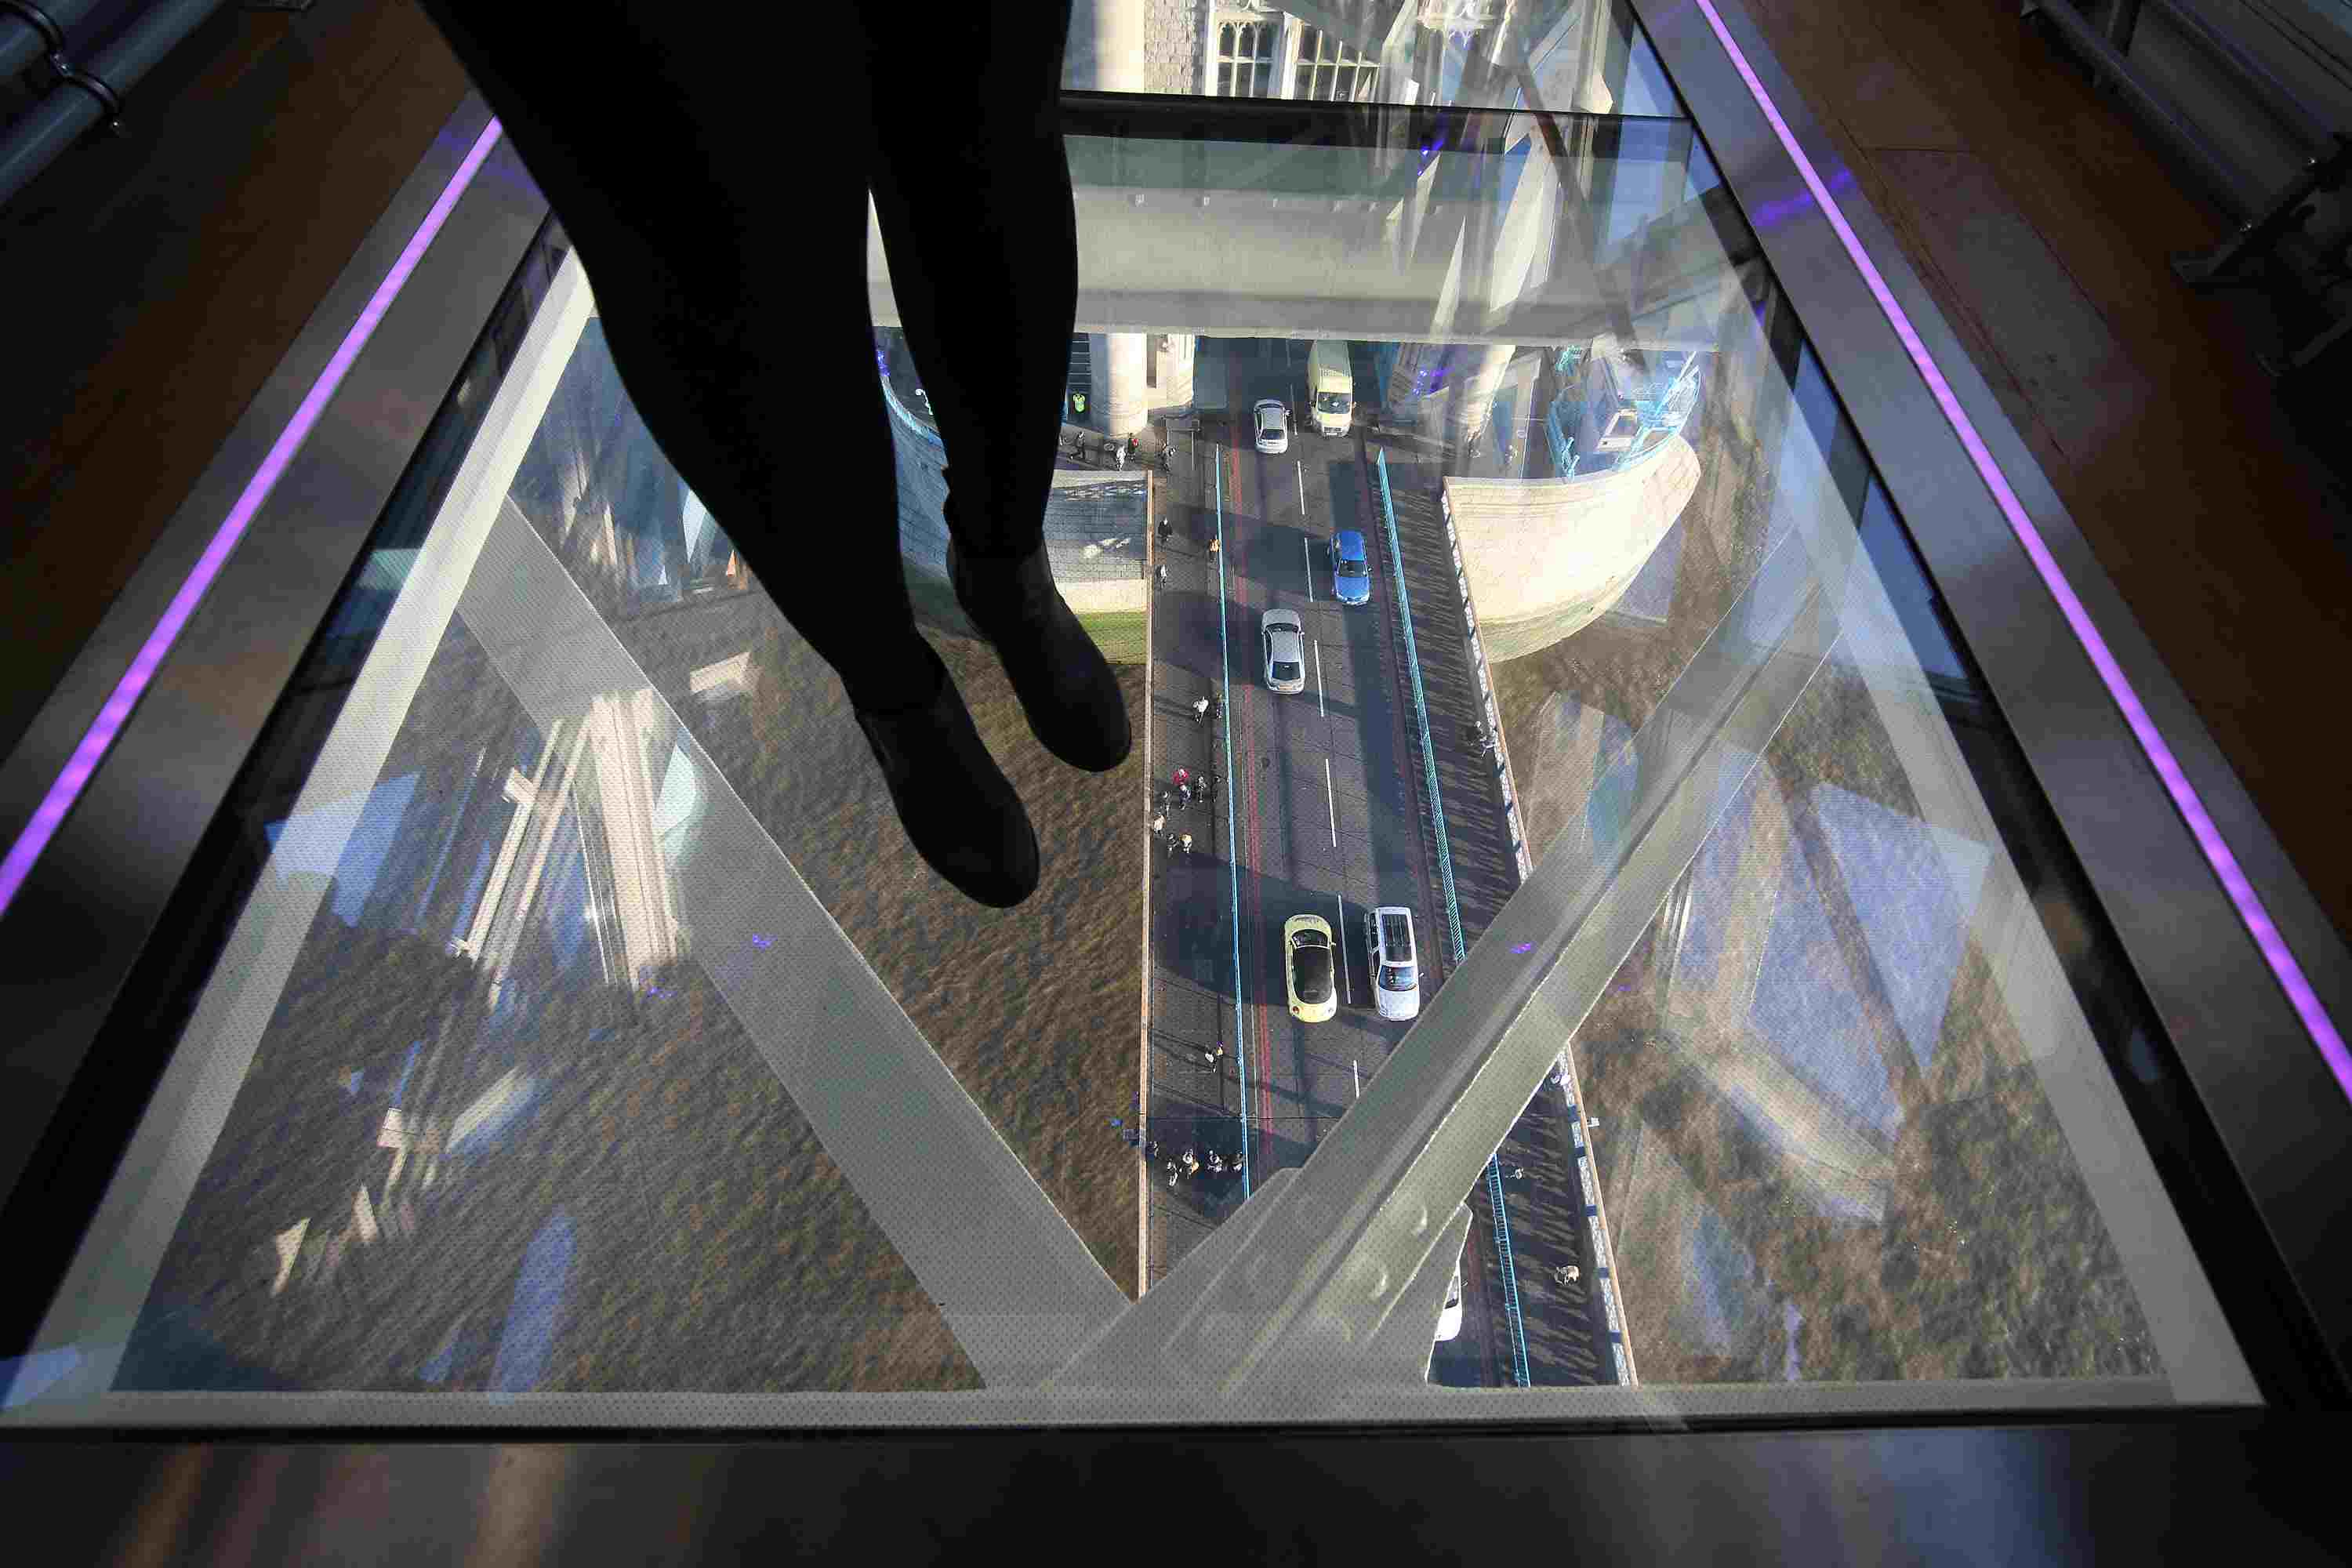 A visitor crosses Tower Bridge's glass walkway in London, England.